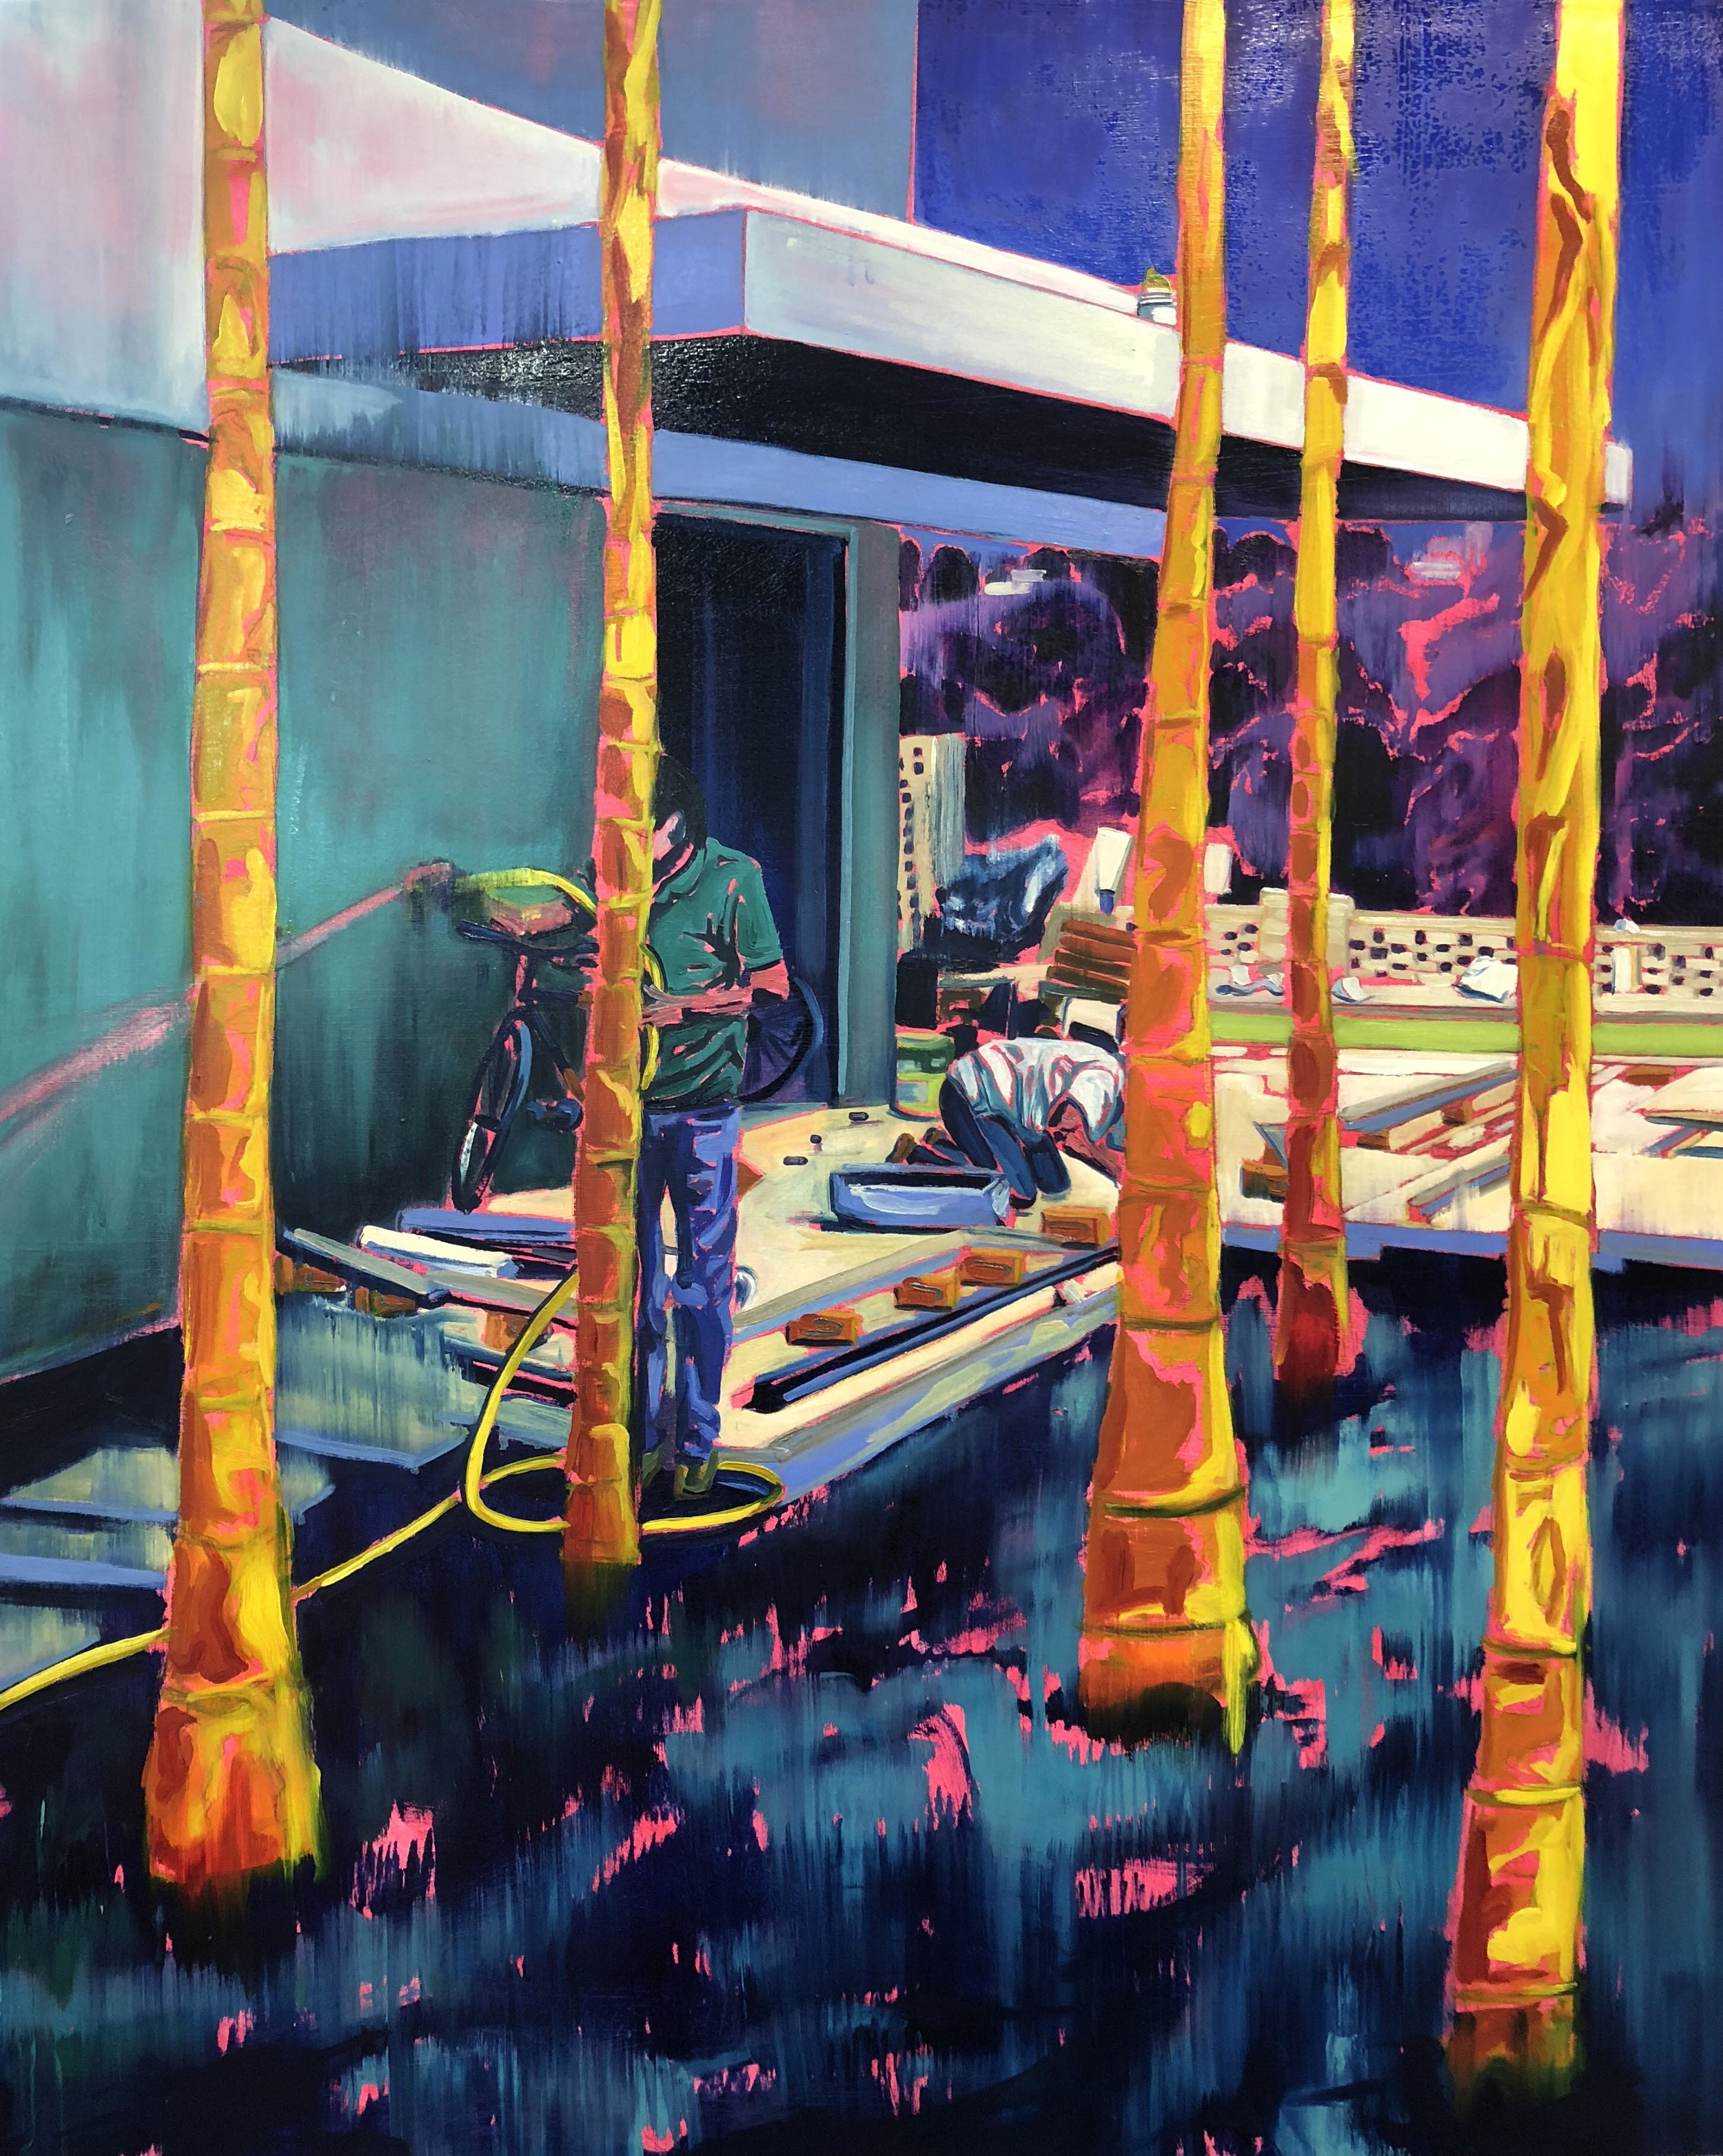 PURPLE LANDS - COPING III - OIL ON CANVAS - 4 X 5 FT  Lord Mervyn Davies -  PRIVATE COLLECTION - London